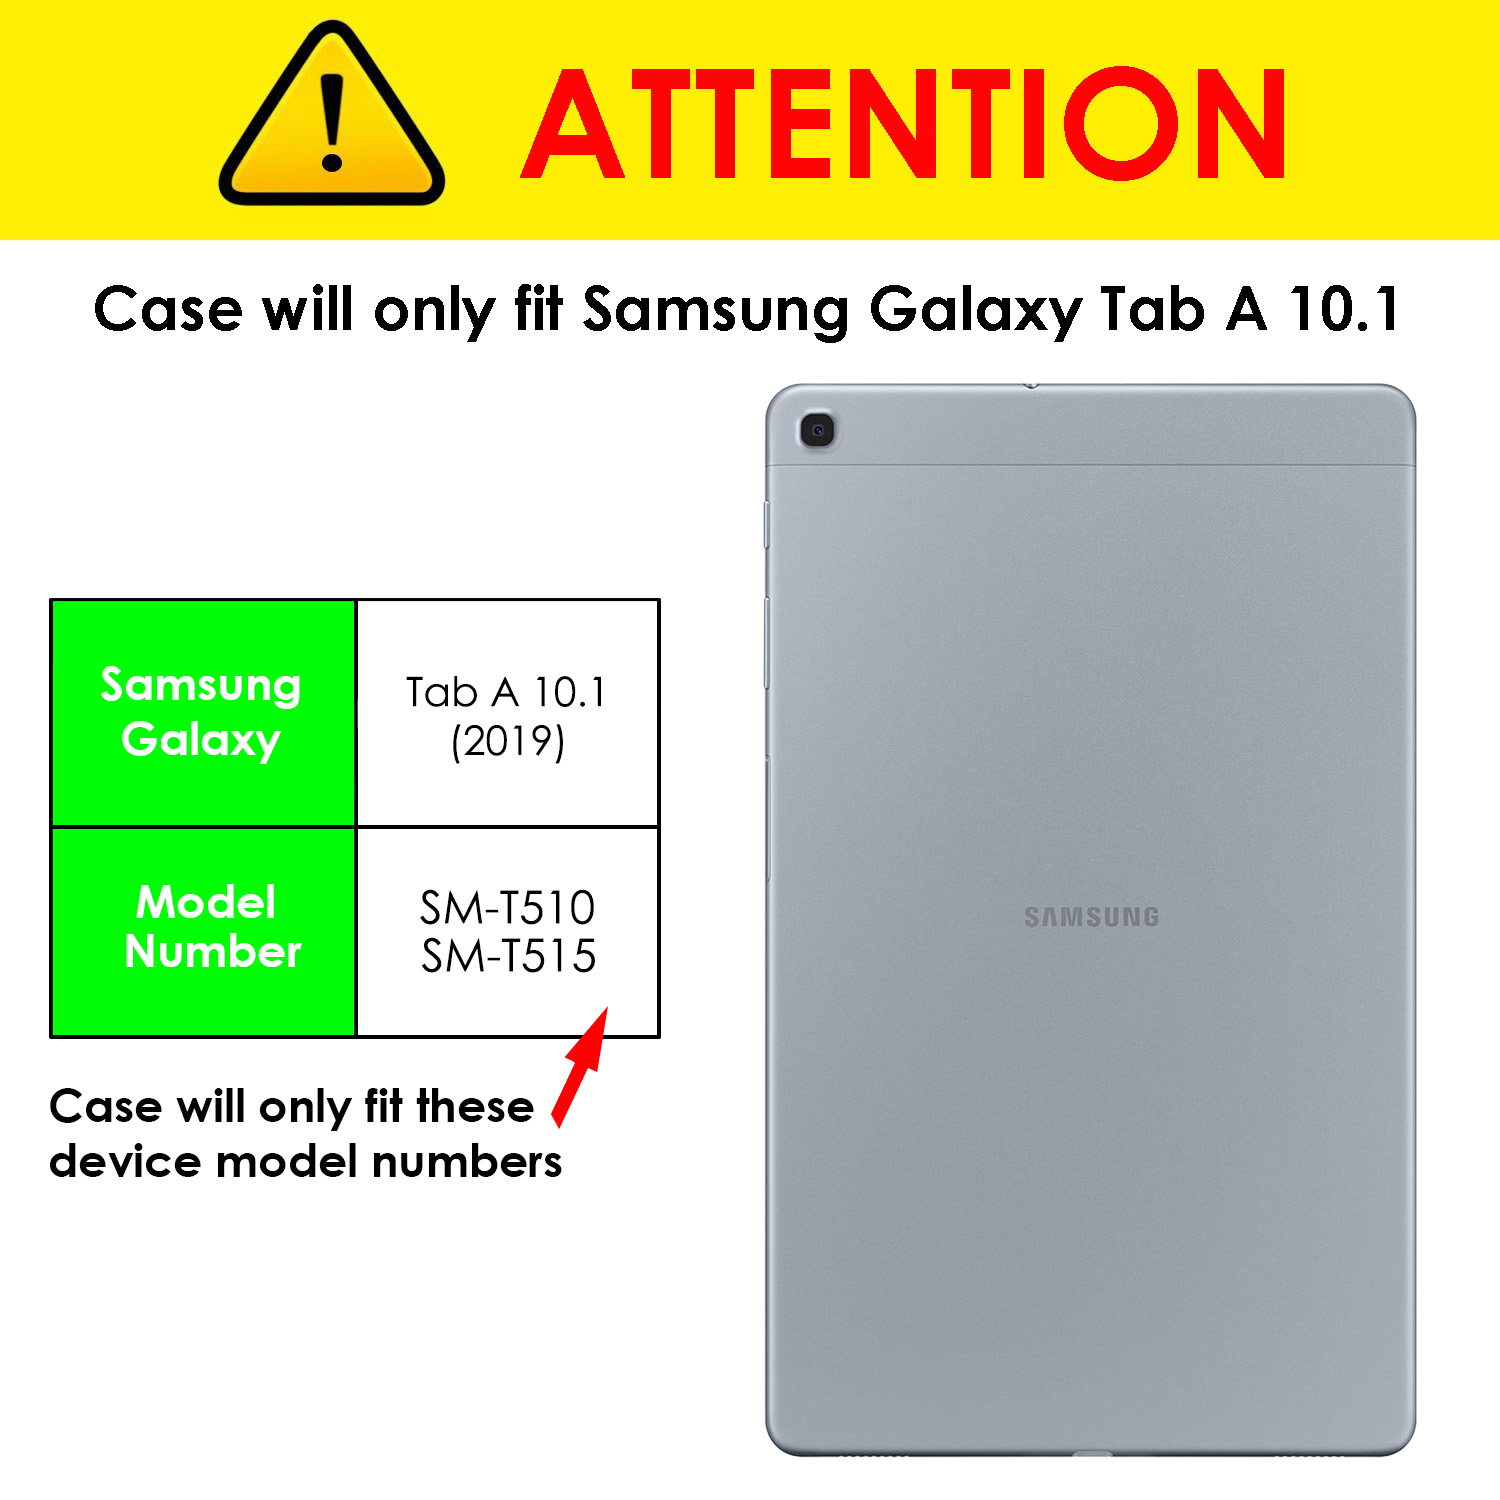 miniature 20 - Samsung Galaxy Tab A 10.1 2019 Étui Magnétique Protection & Support + Stylet